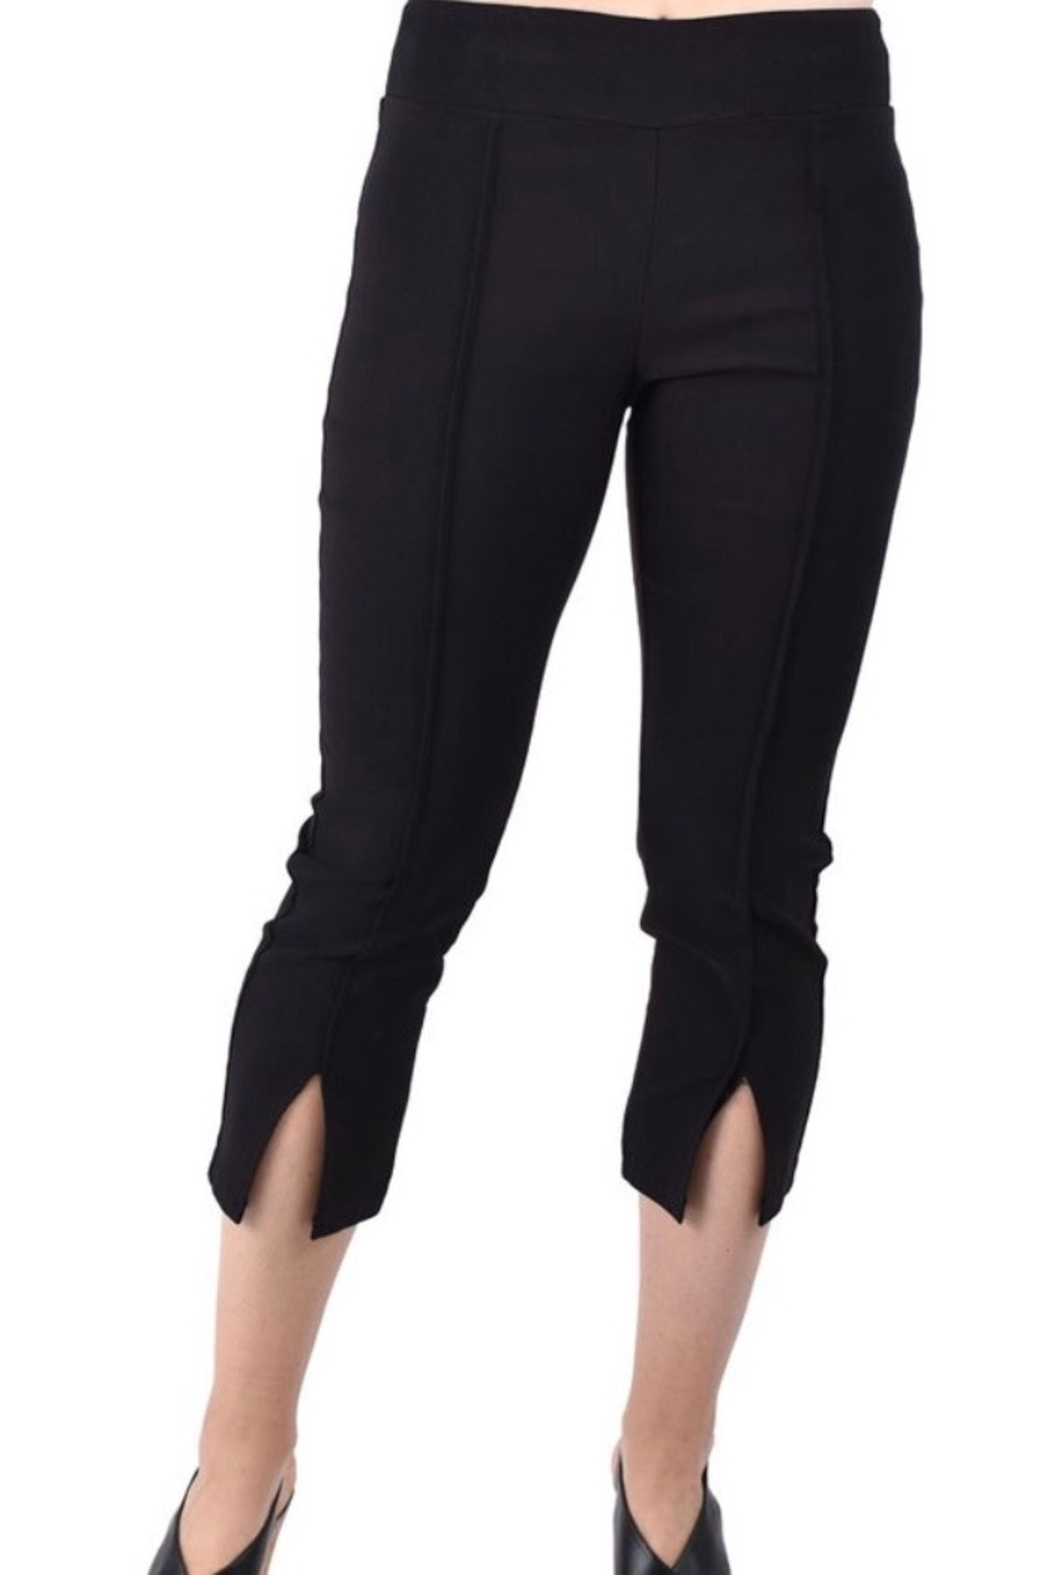 Ethyl Pembroke Pines Pull on black pant with front seam and slits at bottom. - Main Image